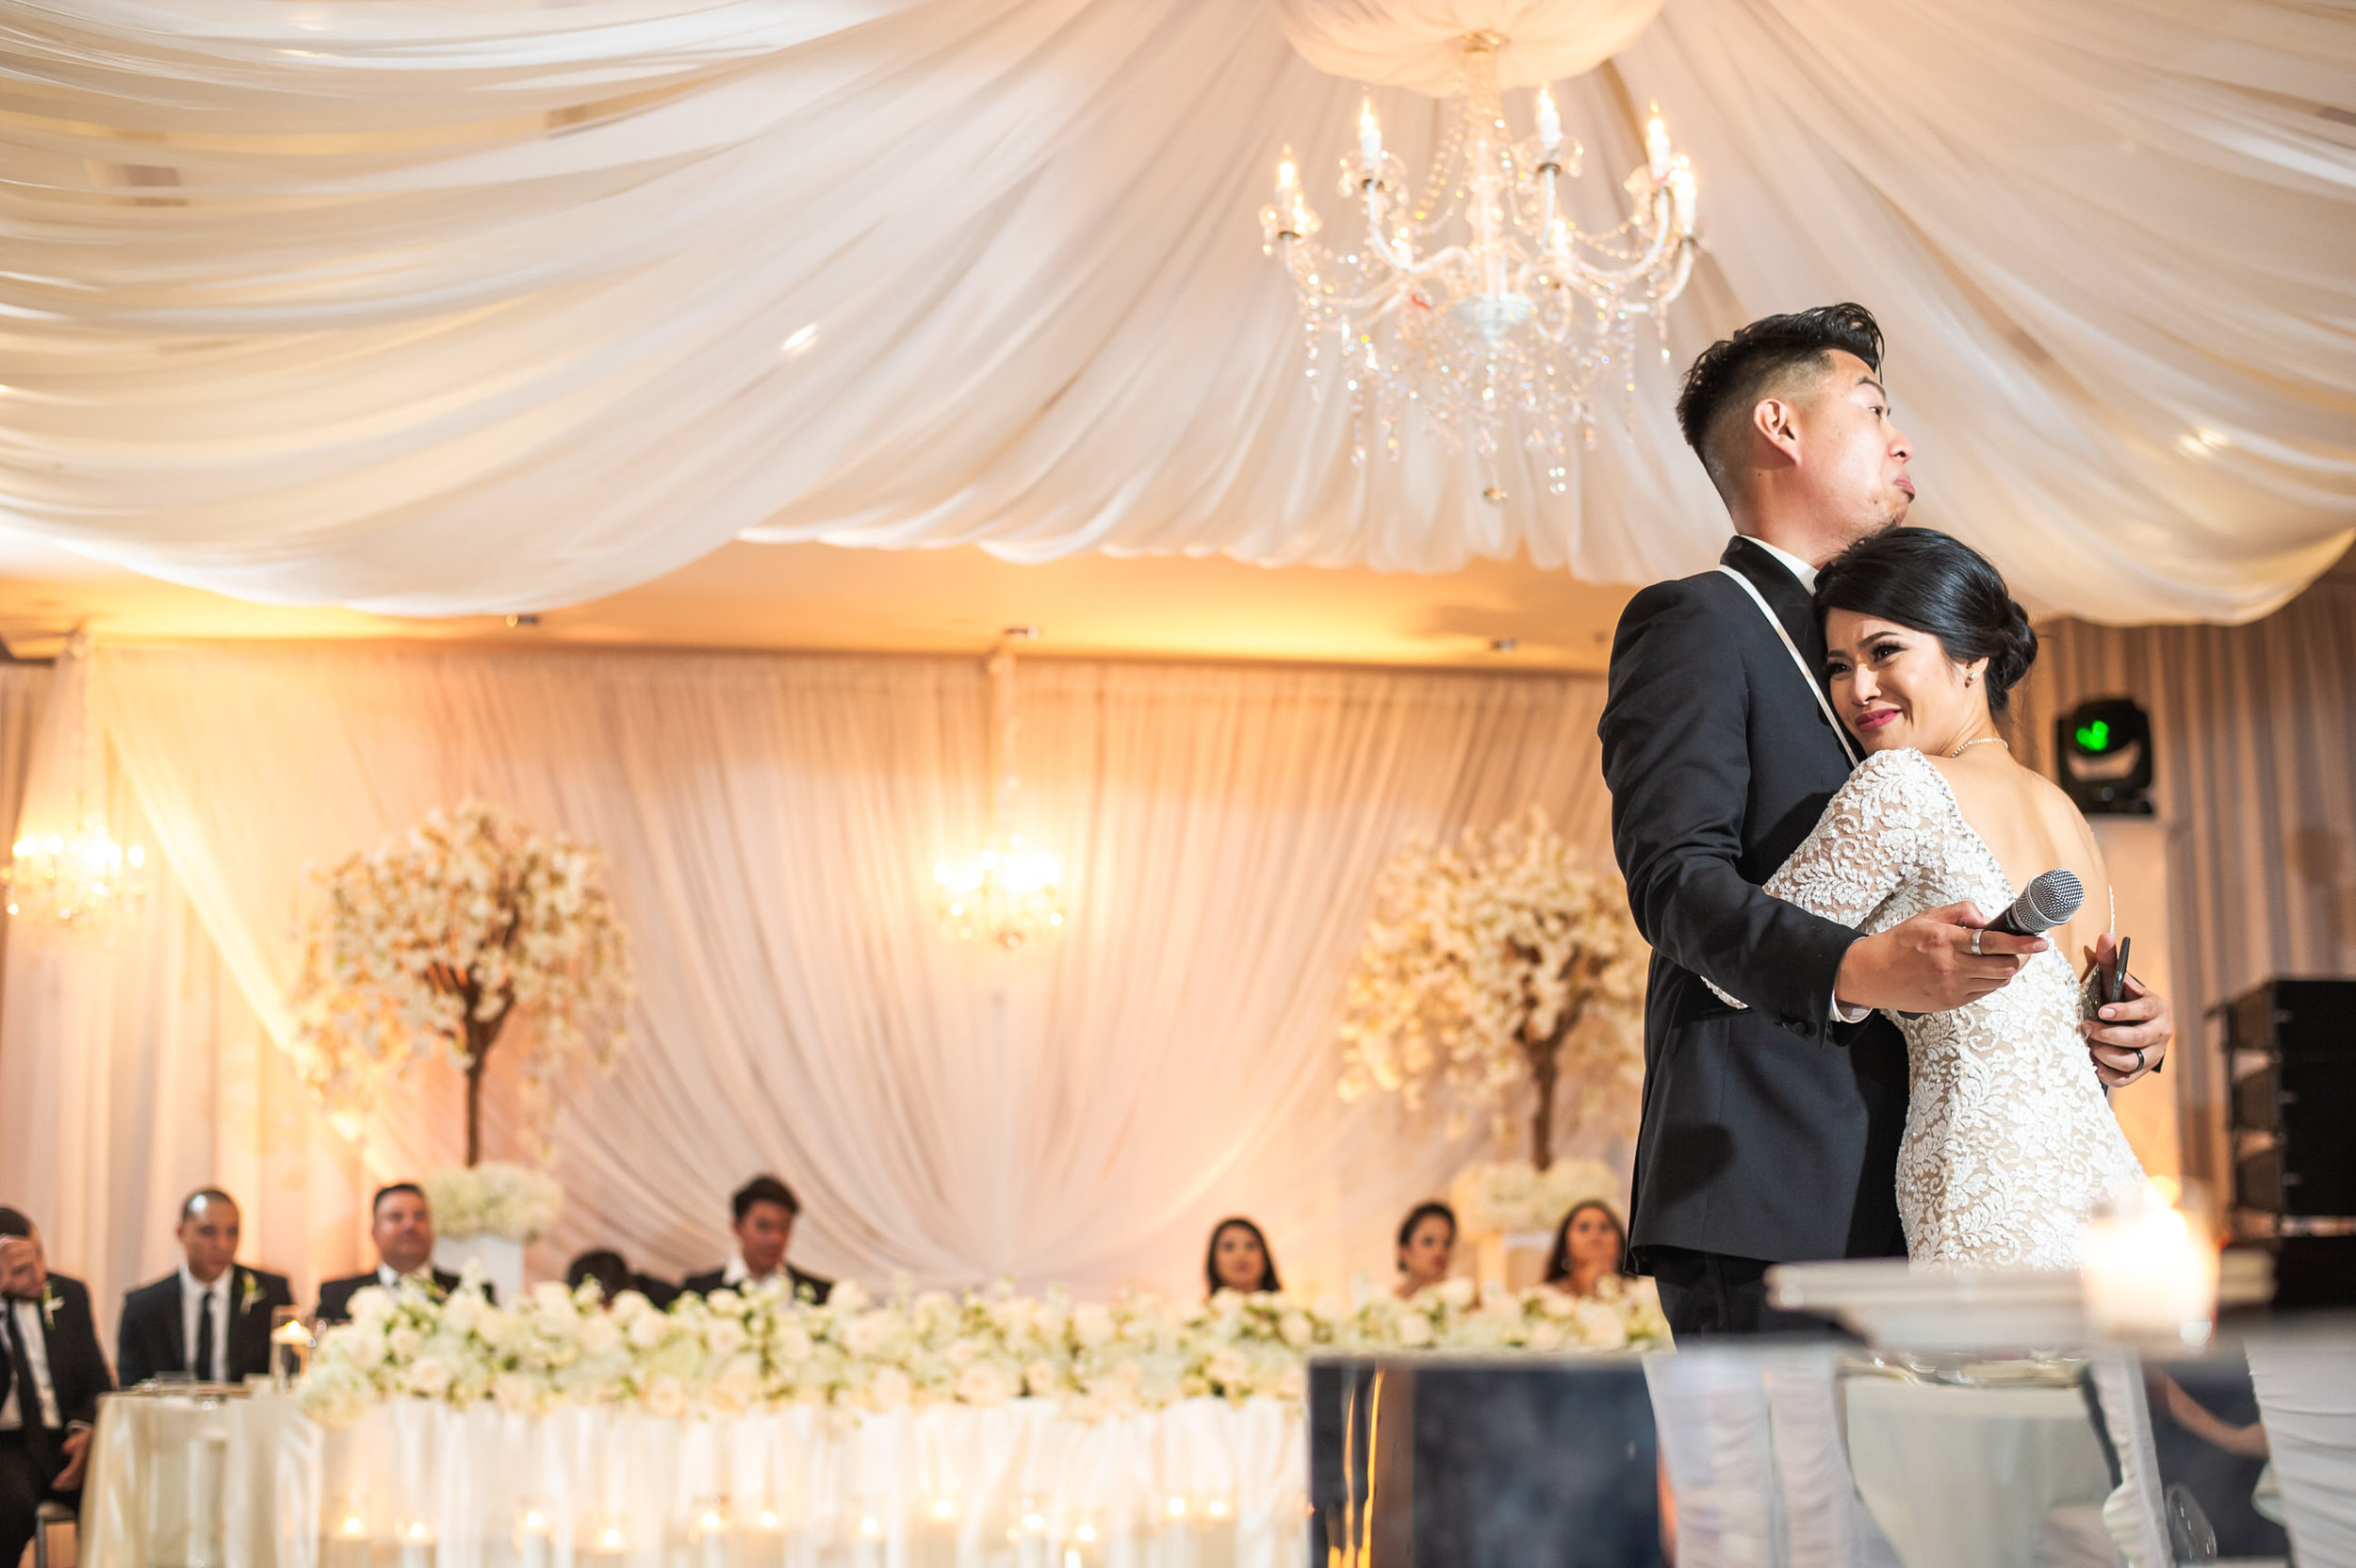 Dream_Wedding_Thanh_Thanh-21137.jpg